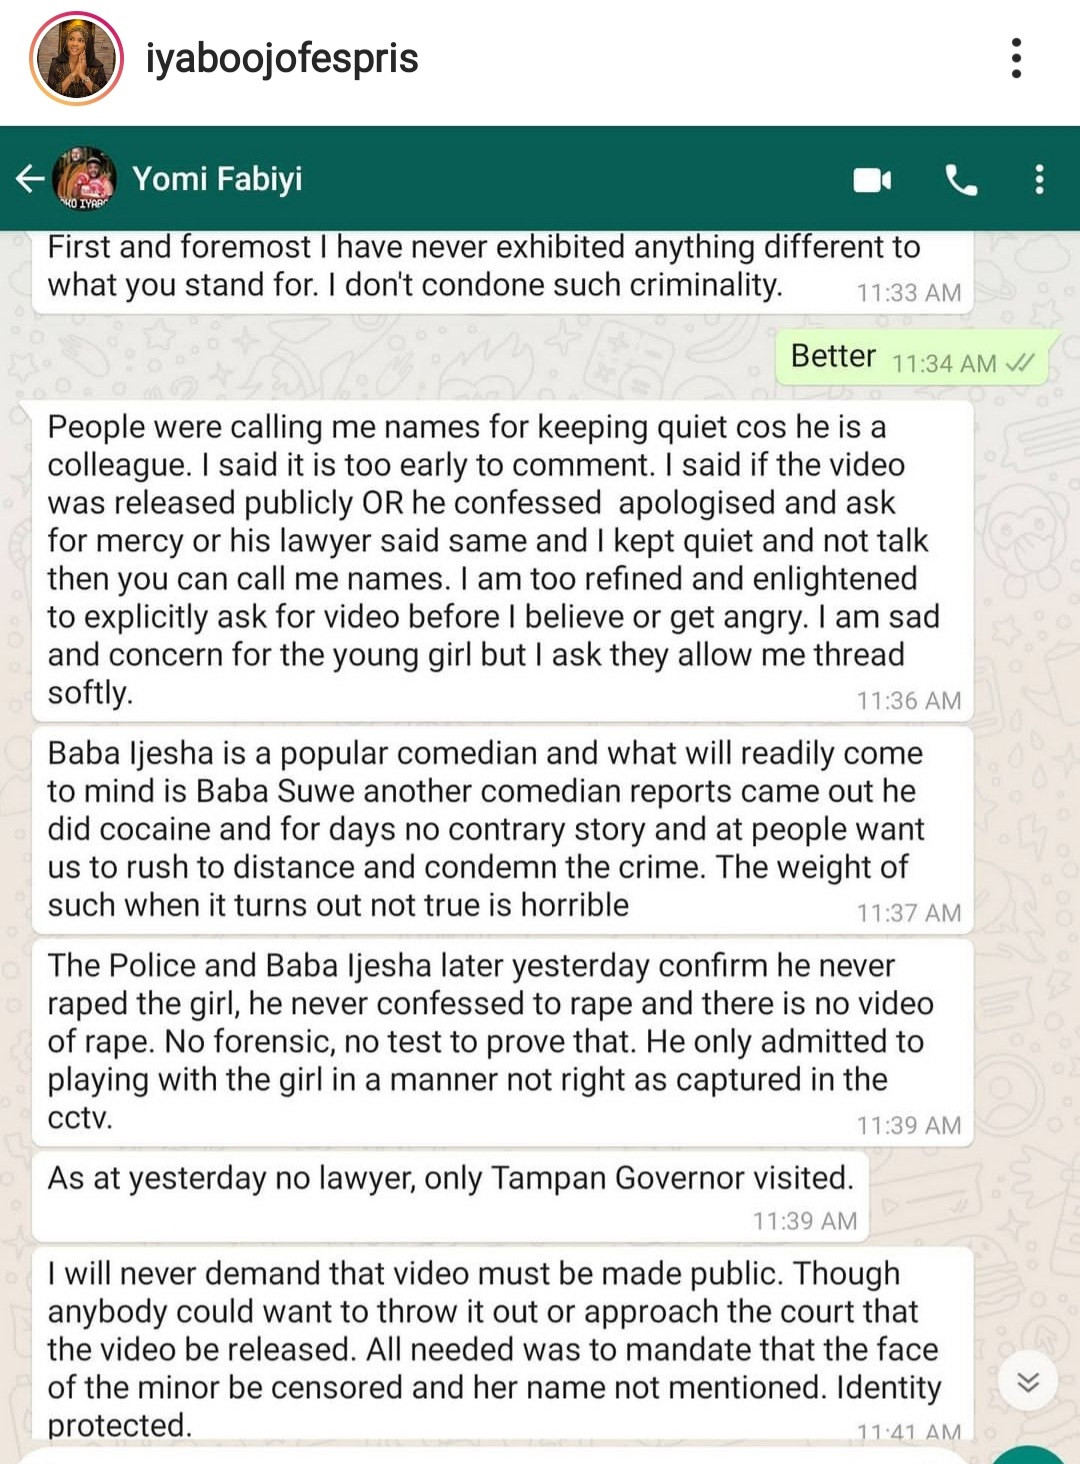 Iyabo Ojo releases her full chat with Yomi Fabiyi to show the real picture of their conversation